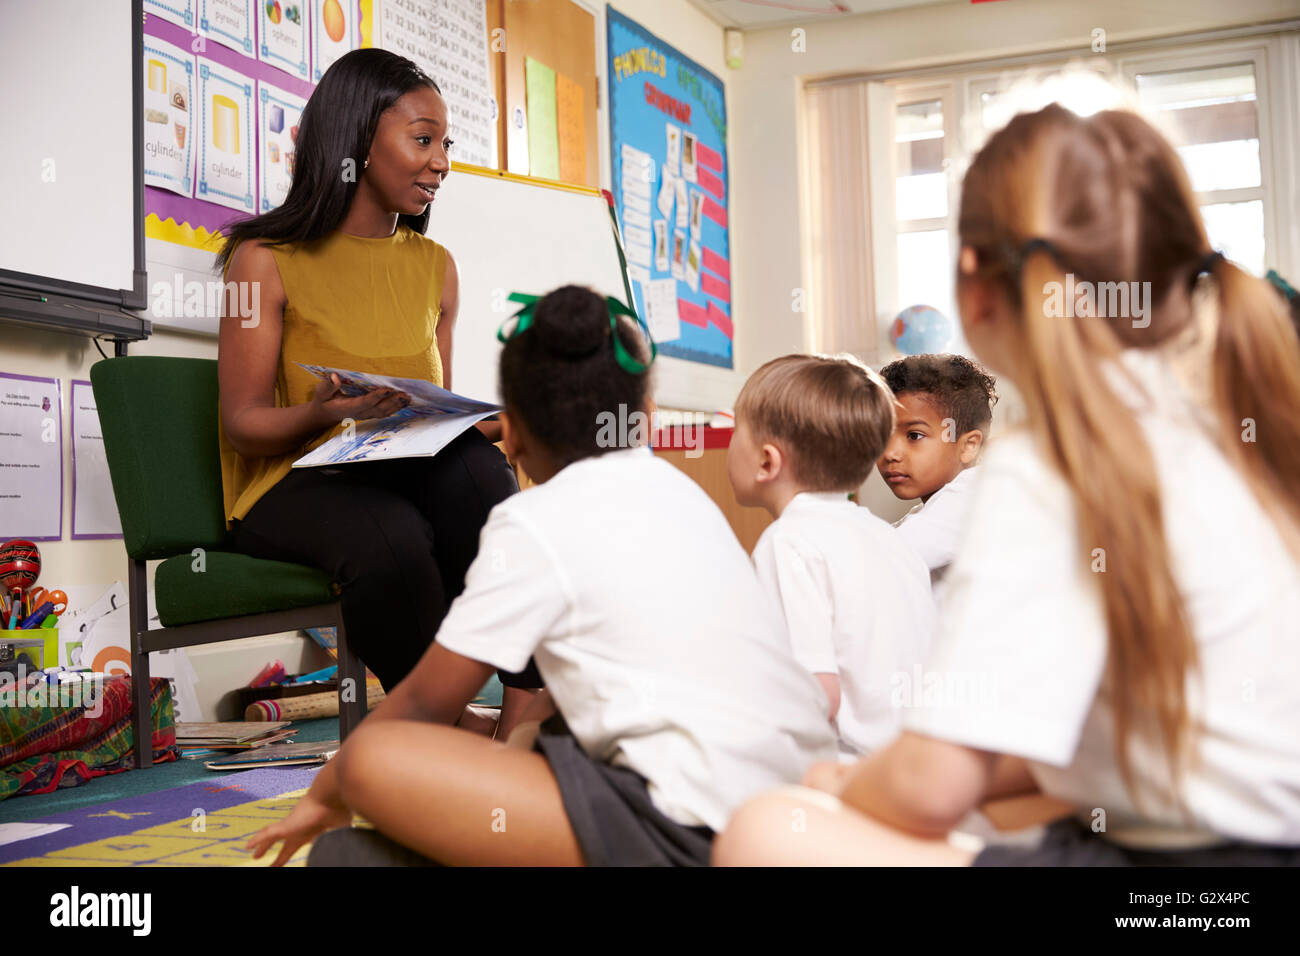 Teacher Reading To Elementary School Pupils In Classroom - Stock Image